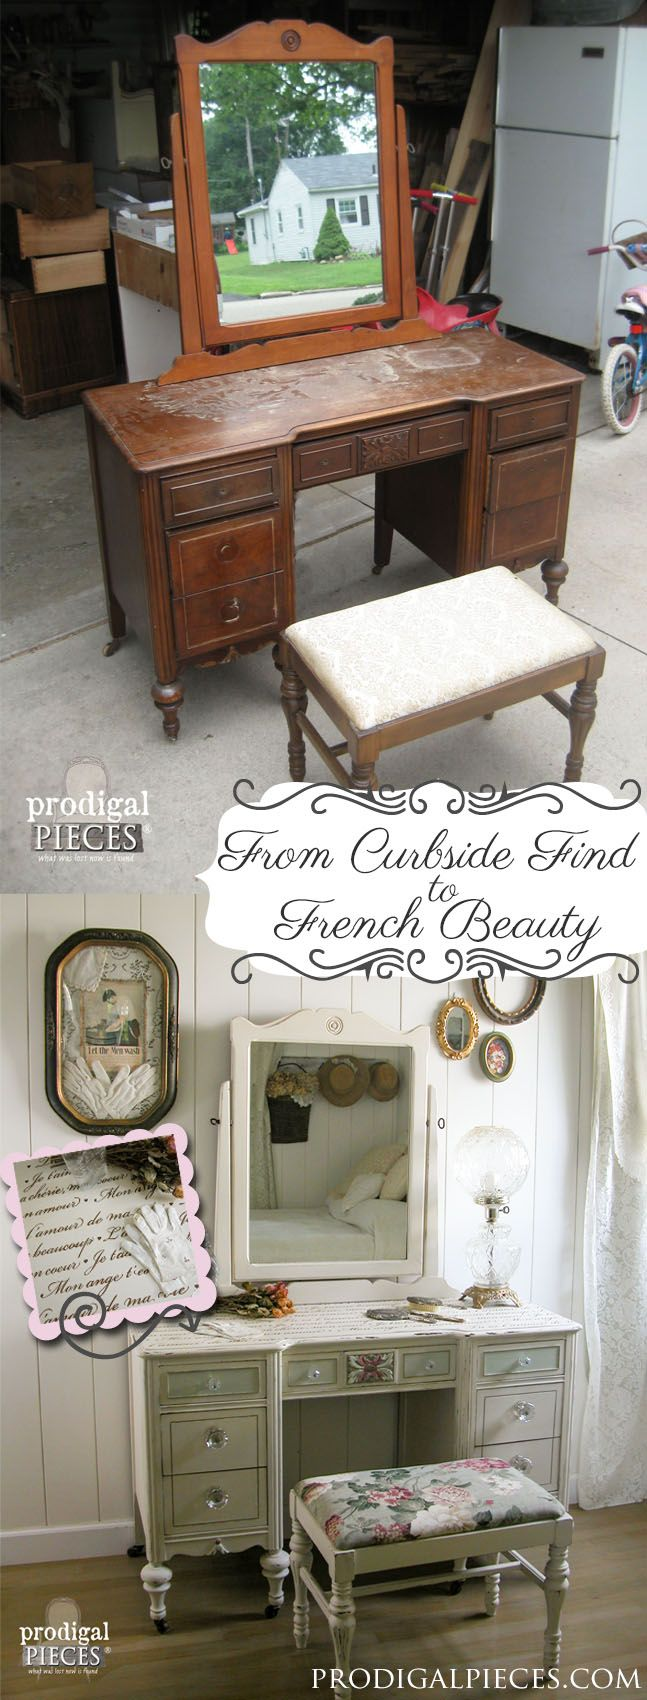 Antique vanity found curbside to french beauty french beauty antique vanity found curbside to french beauty shabby chic dressing tableikea geotapseo Images